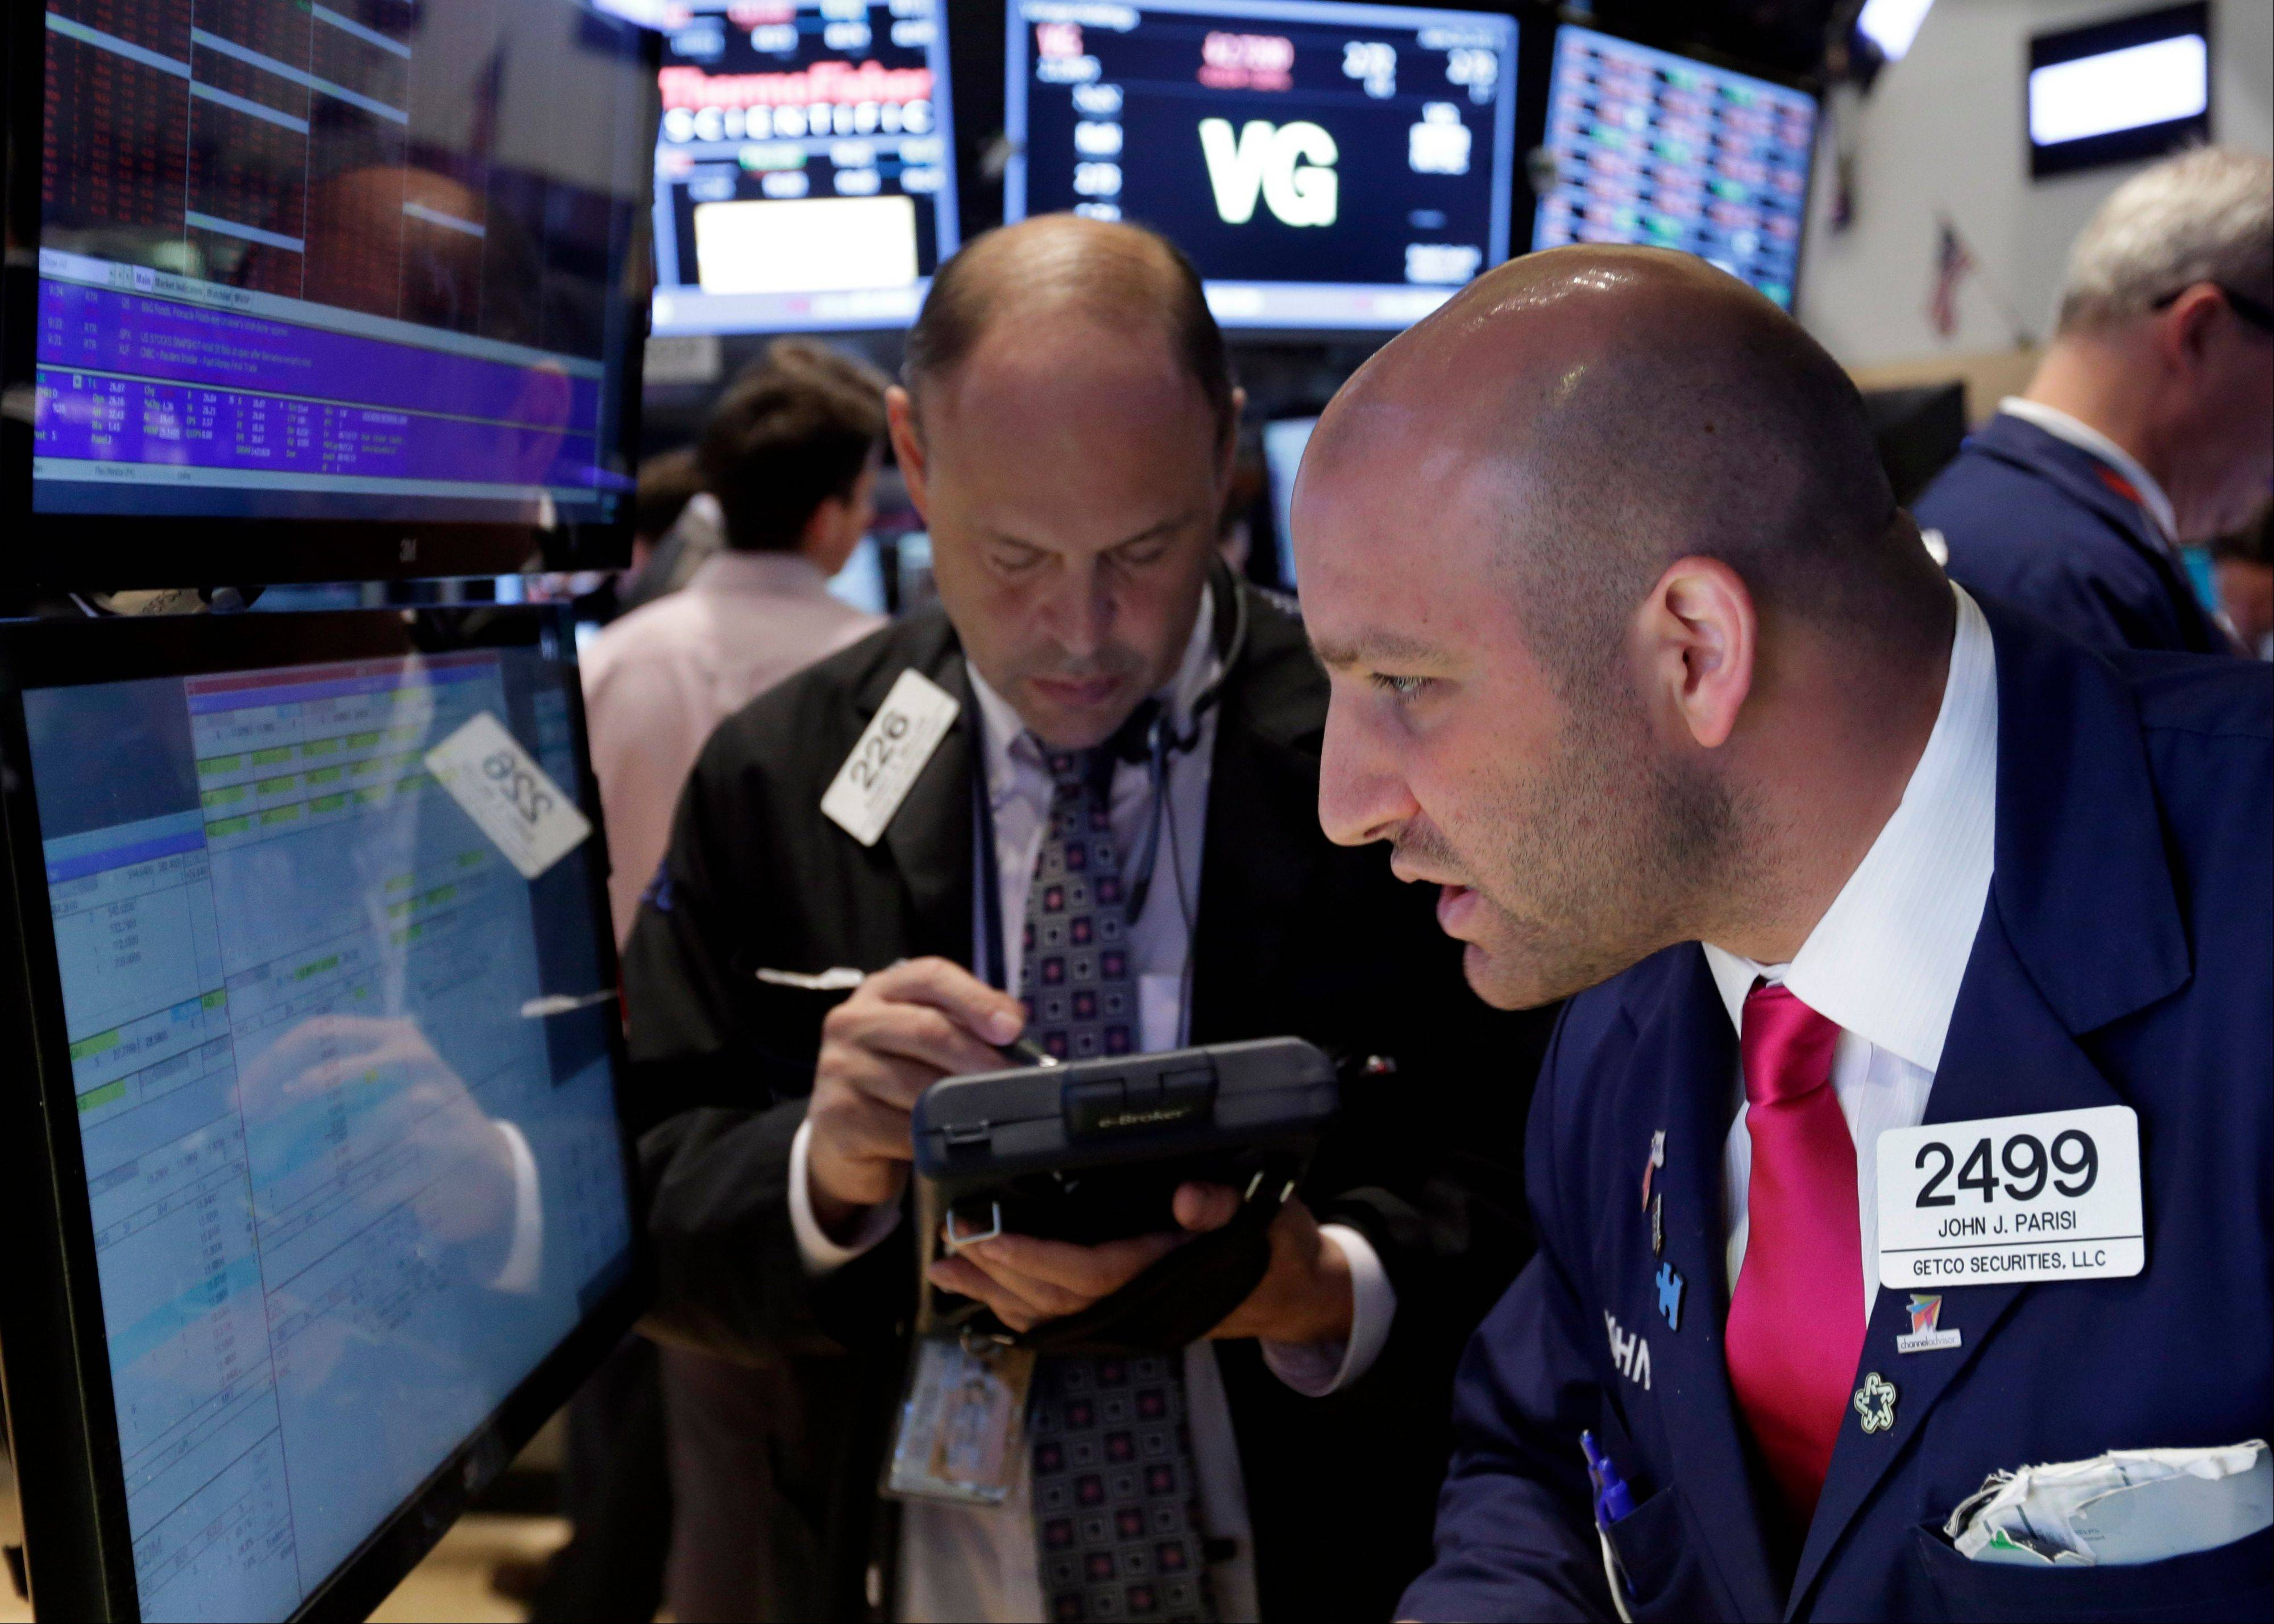 Specialist John Parisi, right, works with traders on the floor of the New York Stock Exchange. U.S. stocks rose in morning trading on Friday as traders regrouped following the biggest drop of the year.